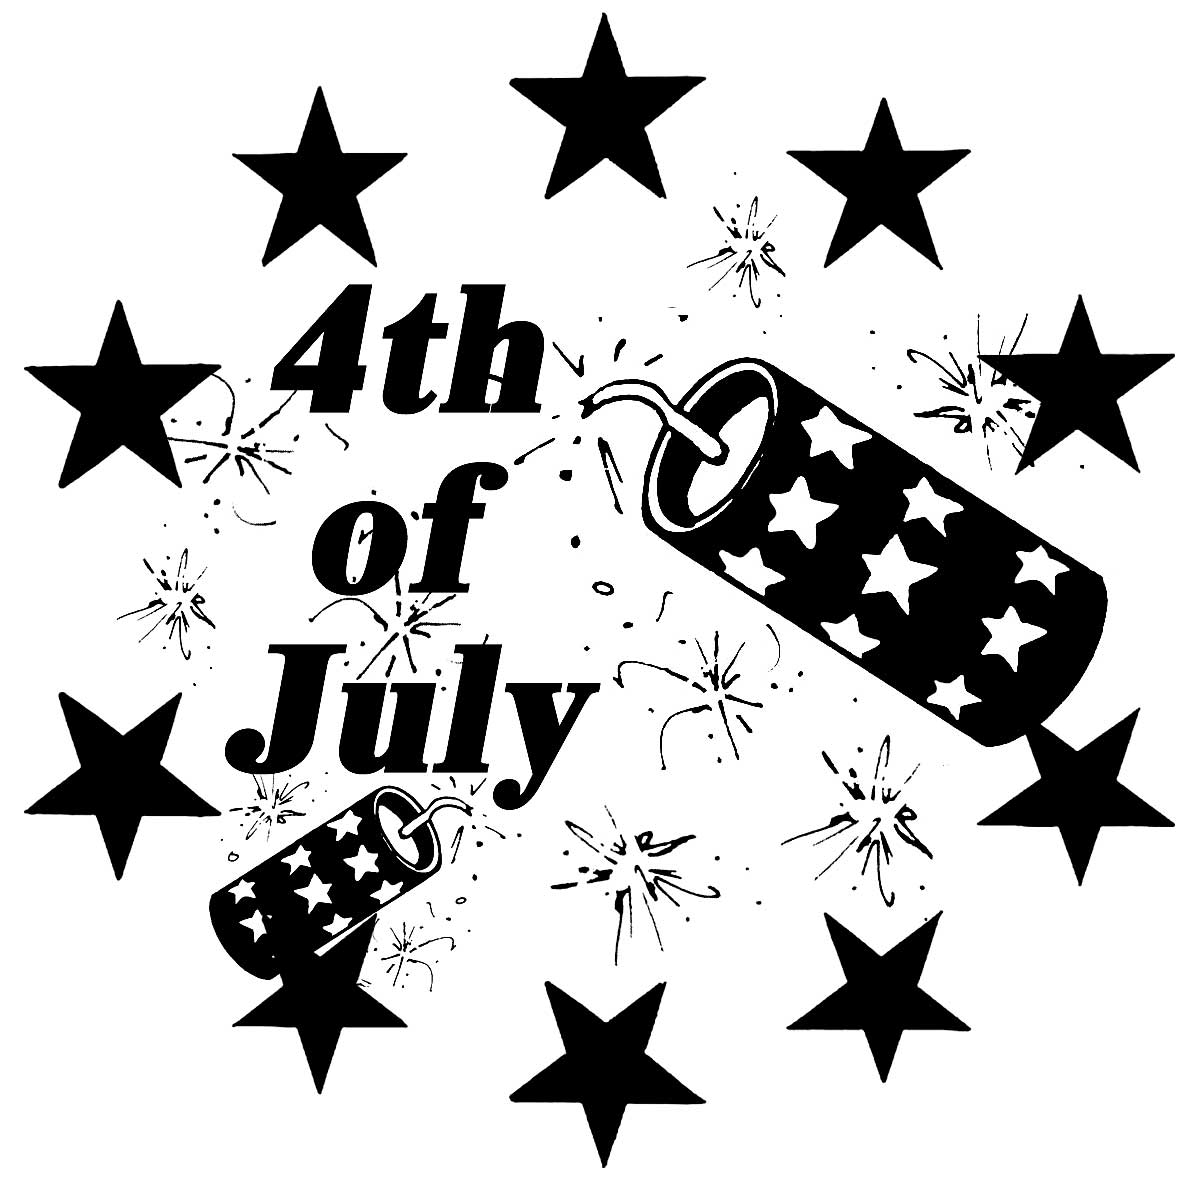 4th Of July Black And White Clipart - Clipart Kid